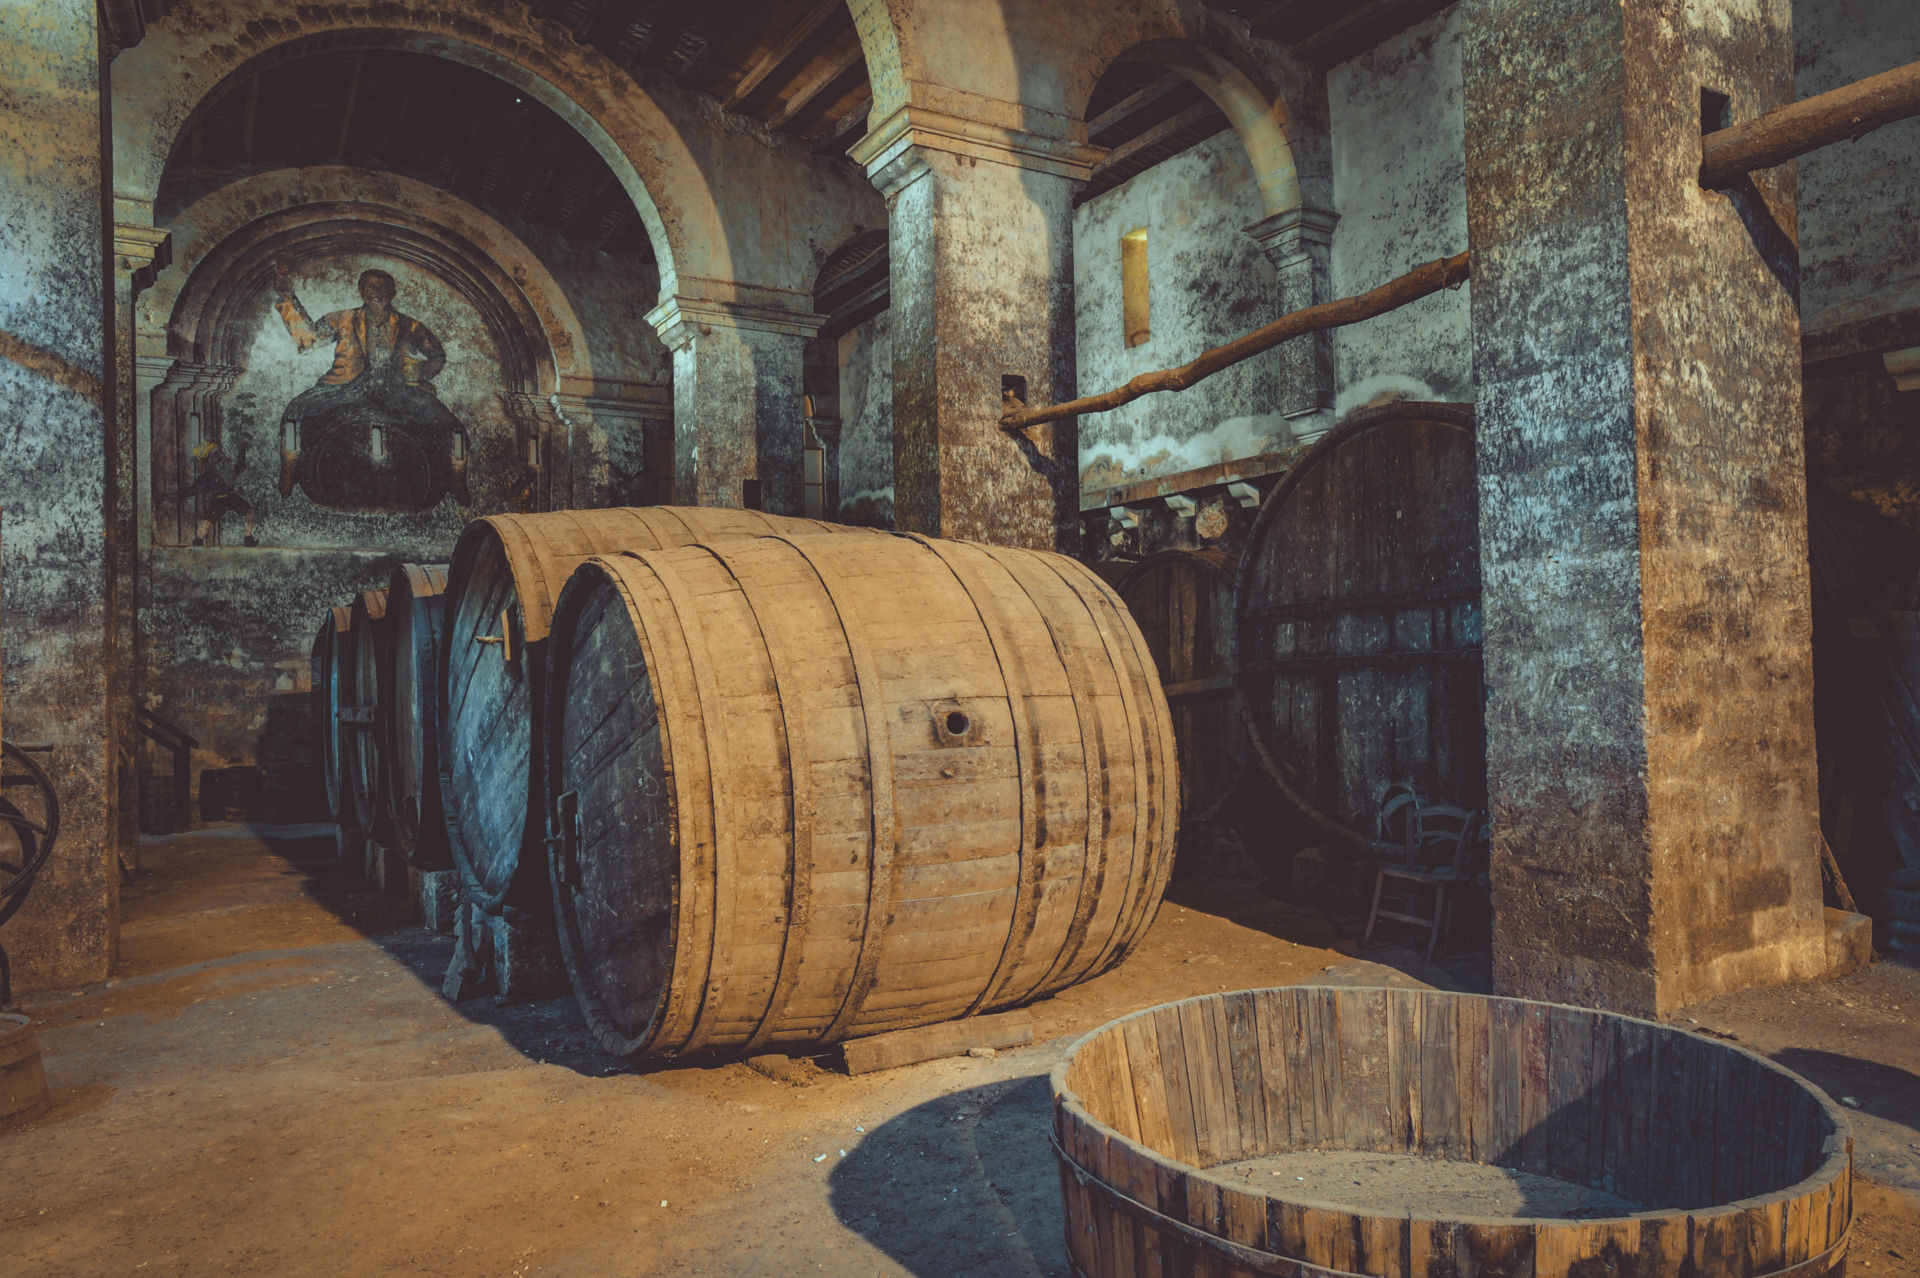 Wine barrels inside the cellar of Mylpotamos winery, Mount Athos